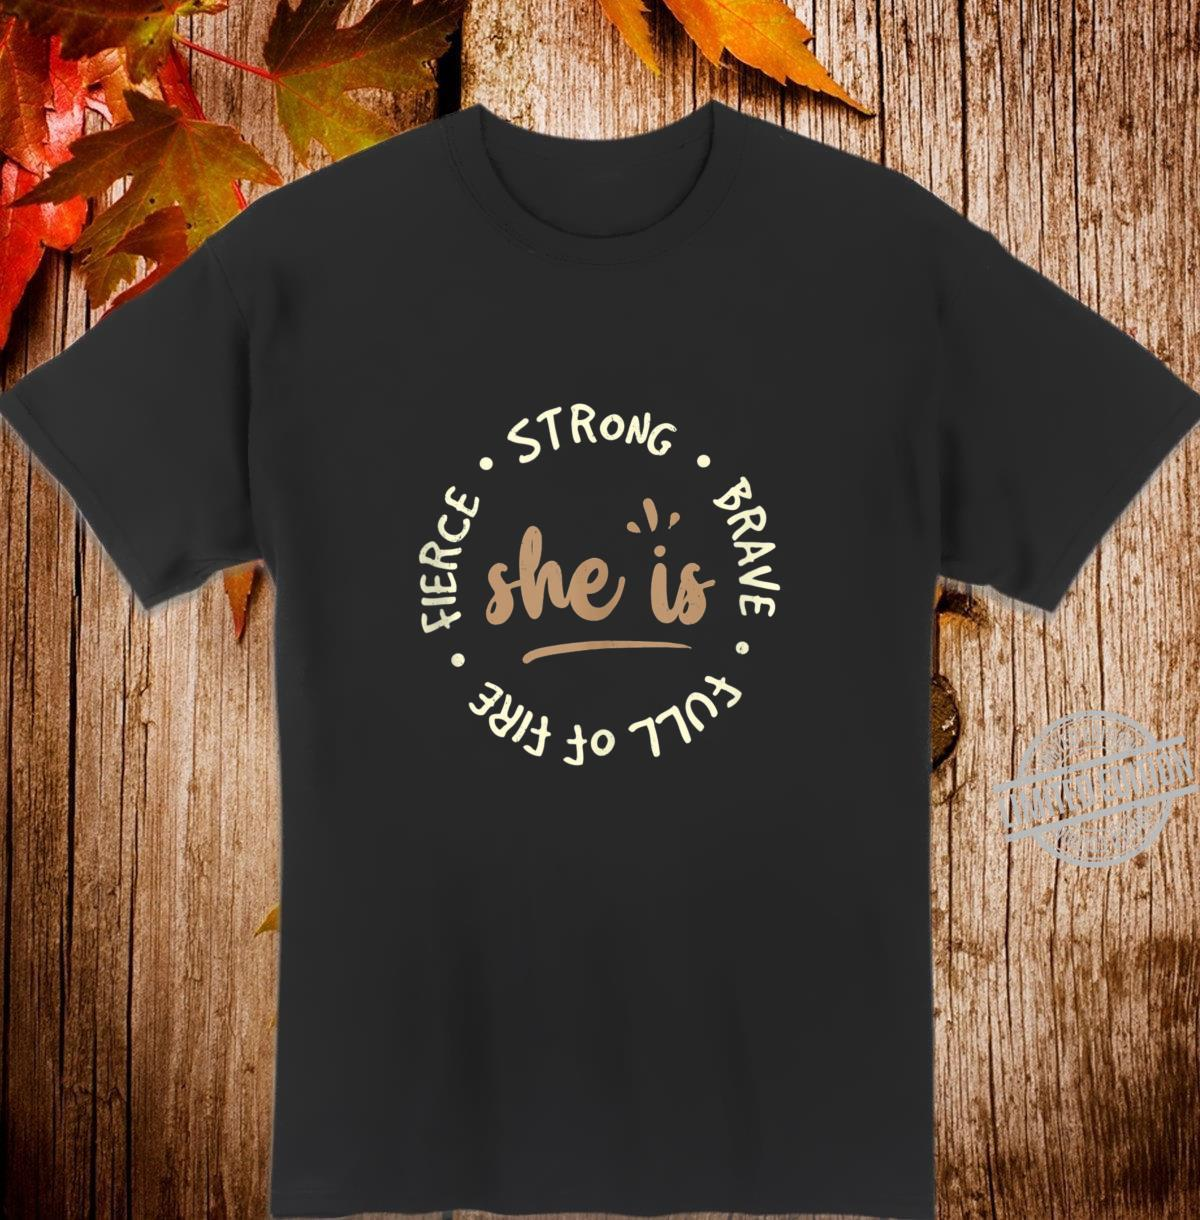 She is Strong & Brave Christian Bible Scripture Shirt